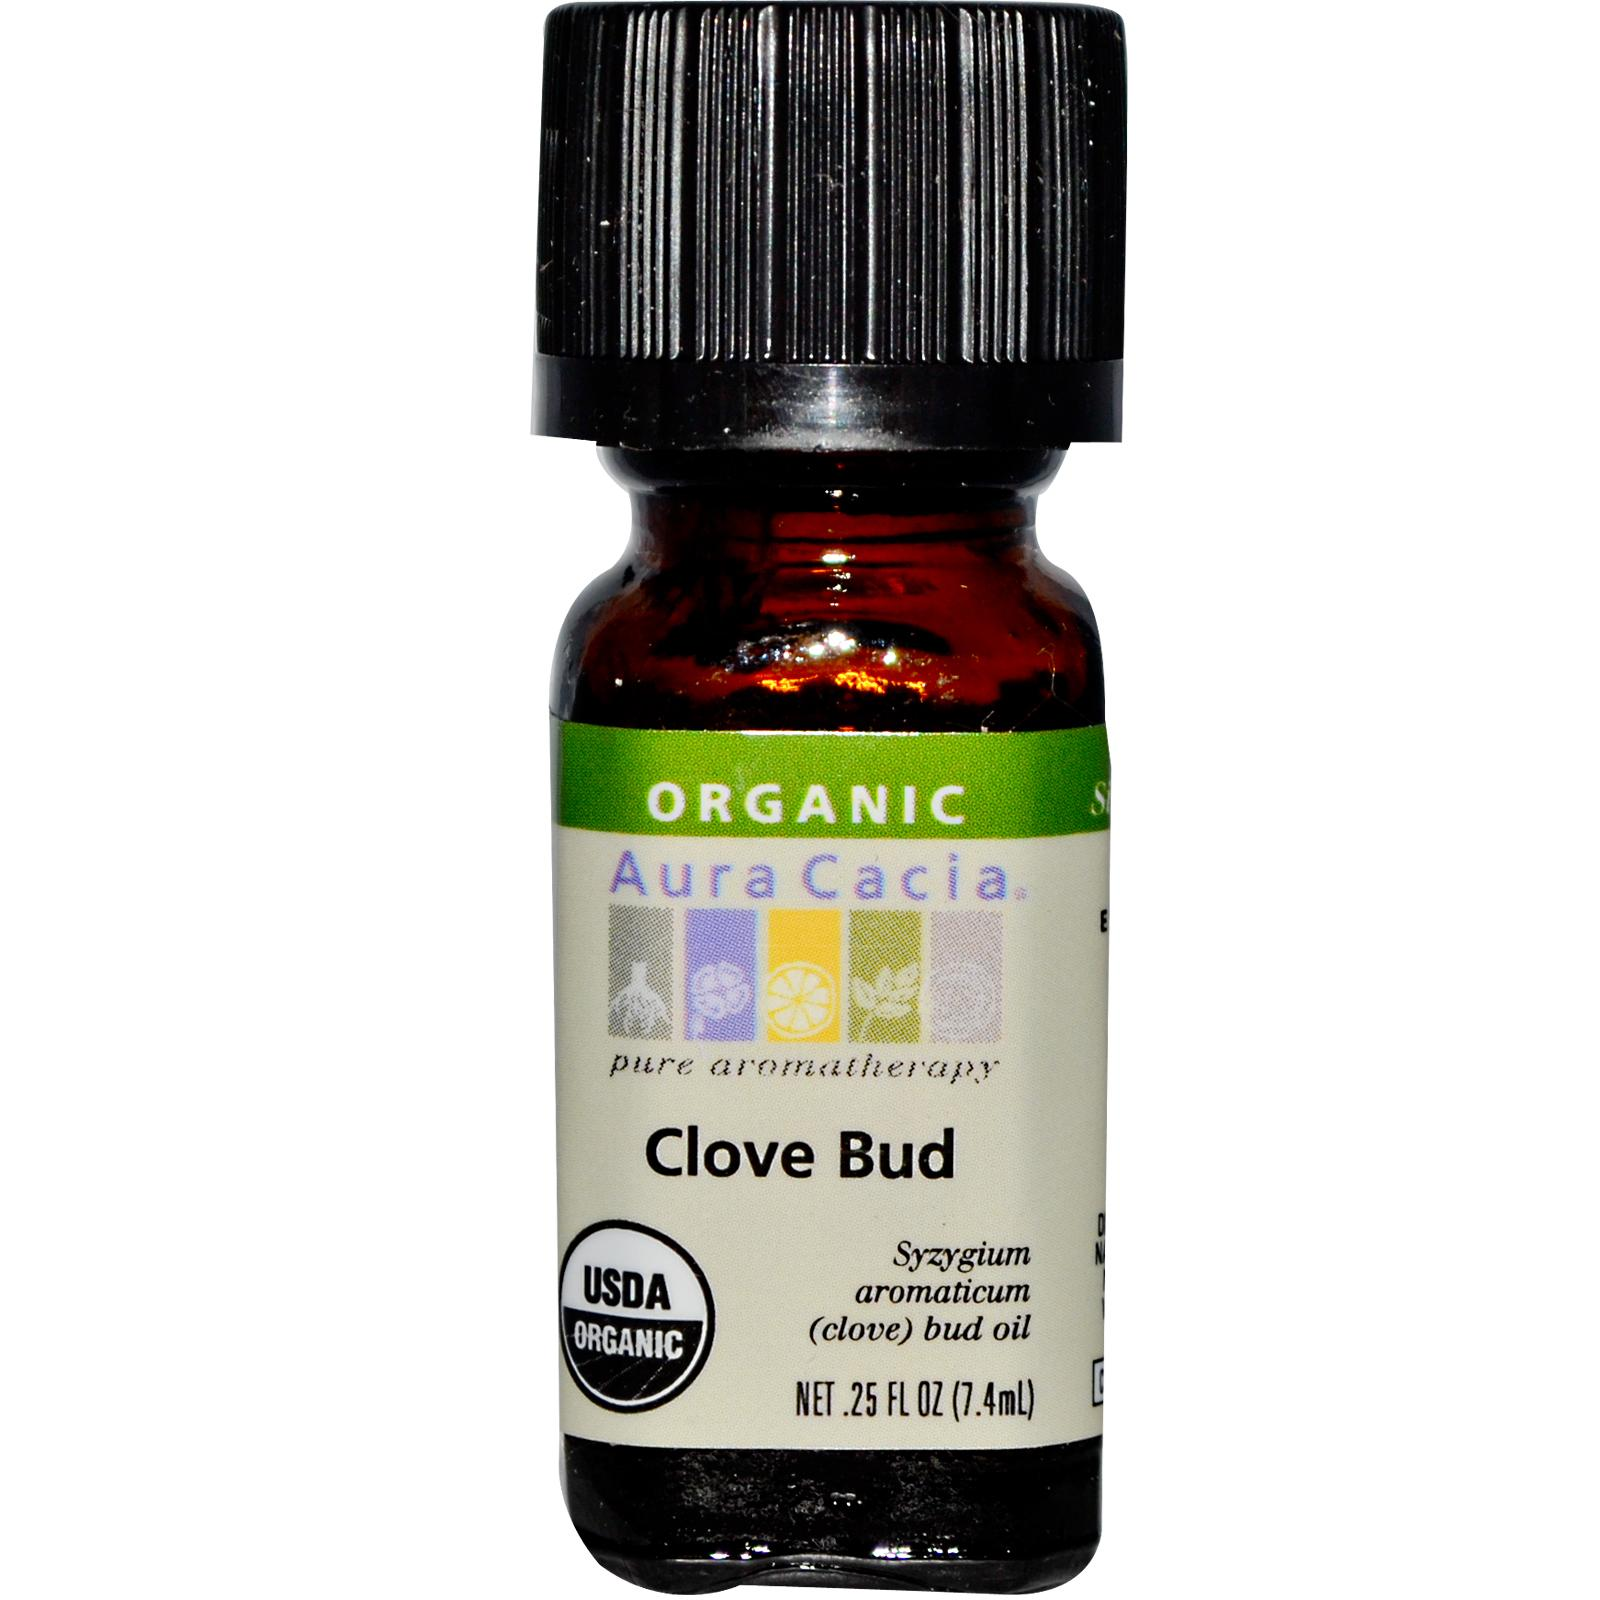 Organic Essential Oil - Aura Cacia - Clove Bud aromatherapy, essential oil, organic, all natural, aura cacia, certified, doTerra,  therapeutic grade, pure, clove bud,